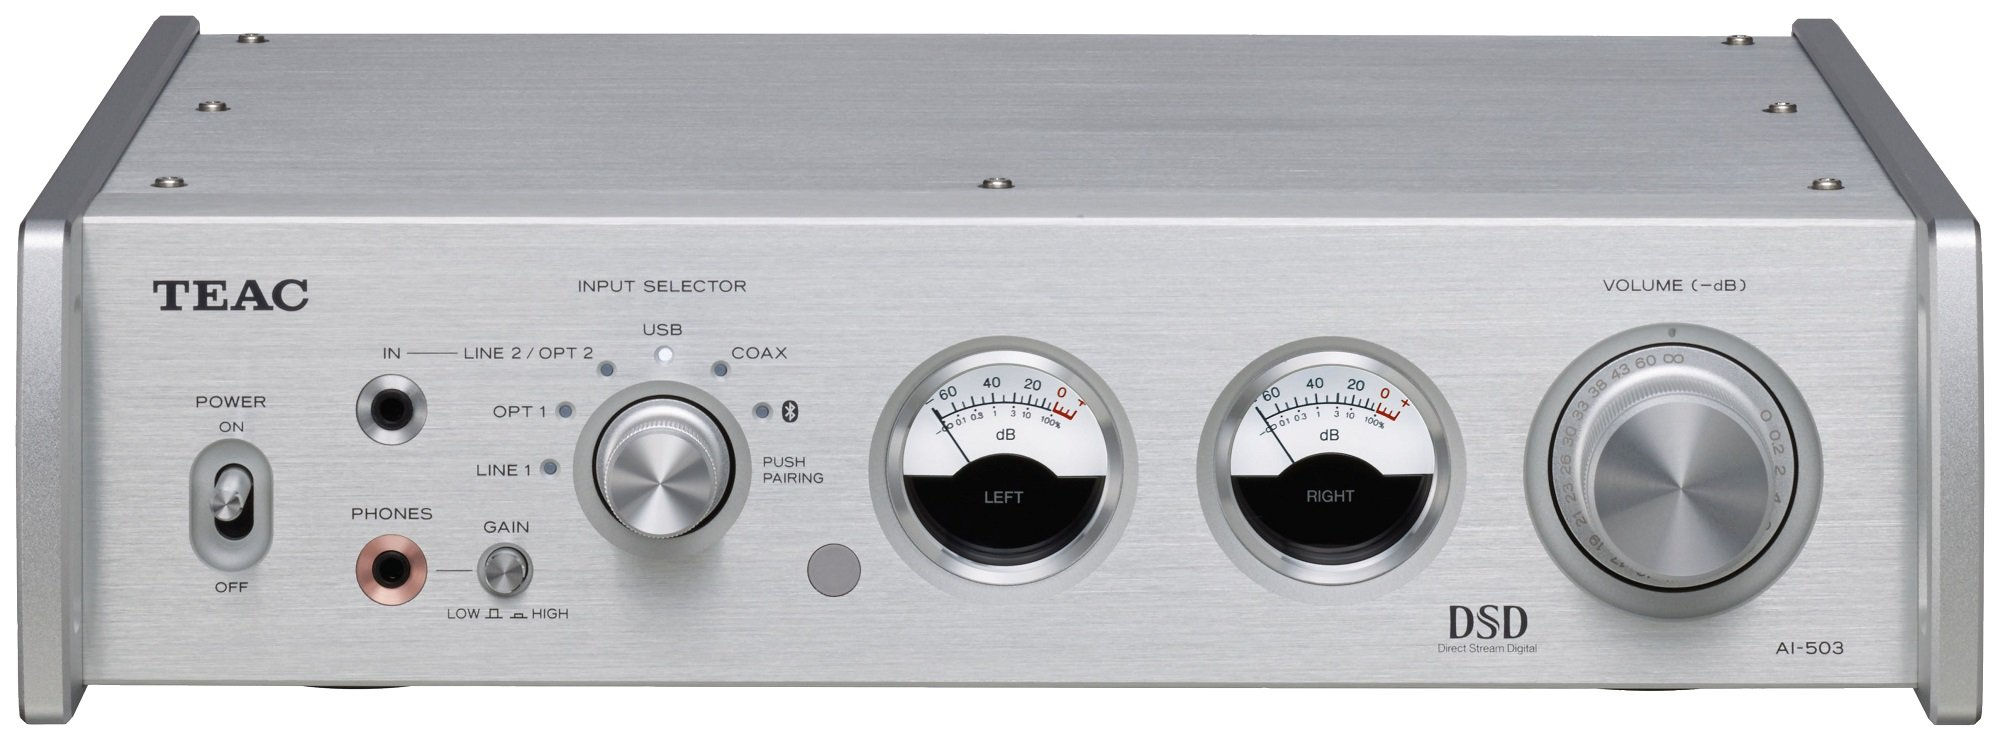 TEAC AI-503 Reference Bluetooth DSD DAC / Integrated Amp / Preamp / Headphone Amp (Silver) by Teac